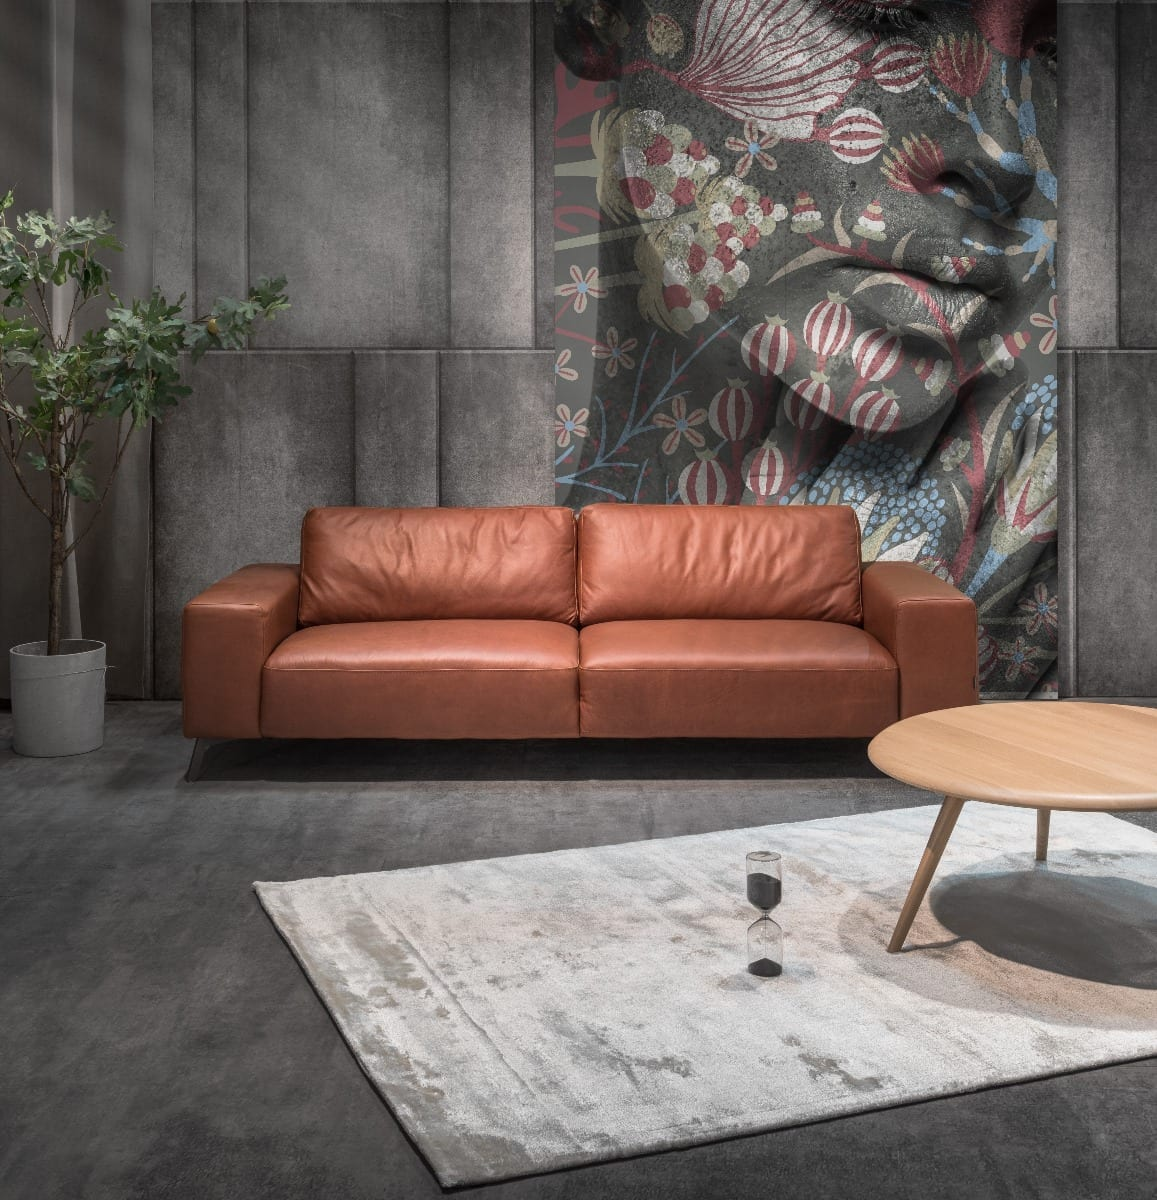 Peachy Melbourne 3 Seater Leather Sofa Beatyapartments Chair Design Images Beatyapartmentscom